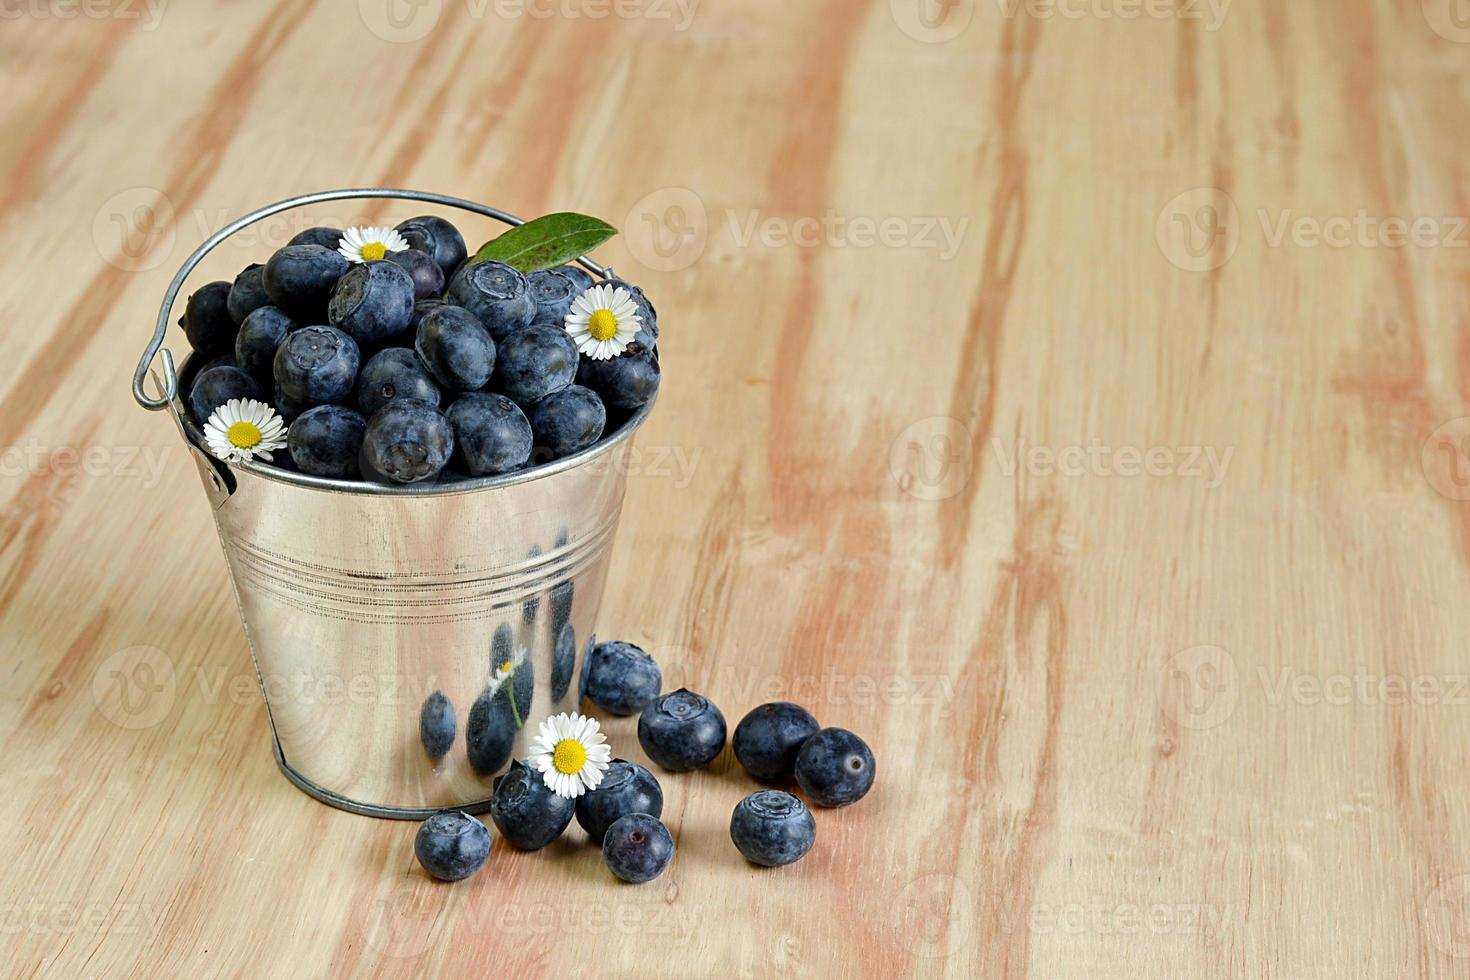 Blueberries in a bucket with daisy flowers photo